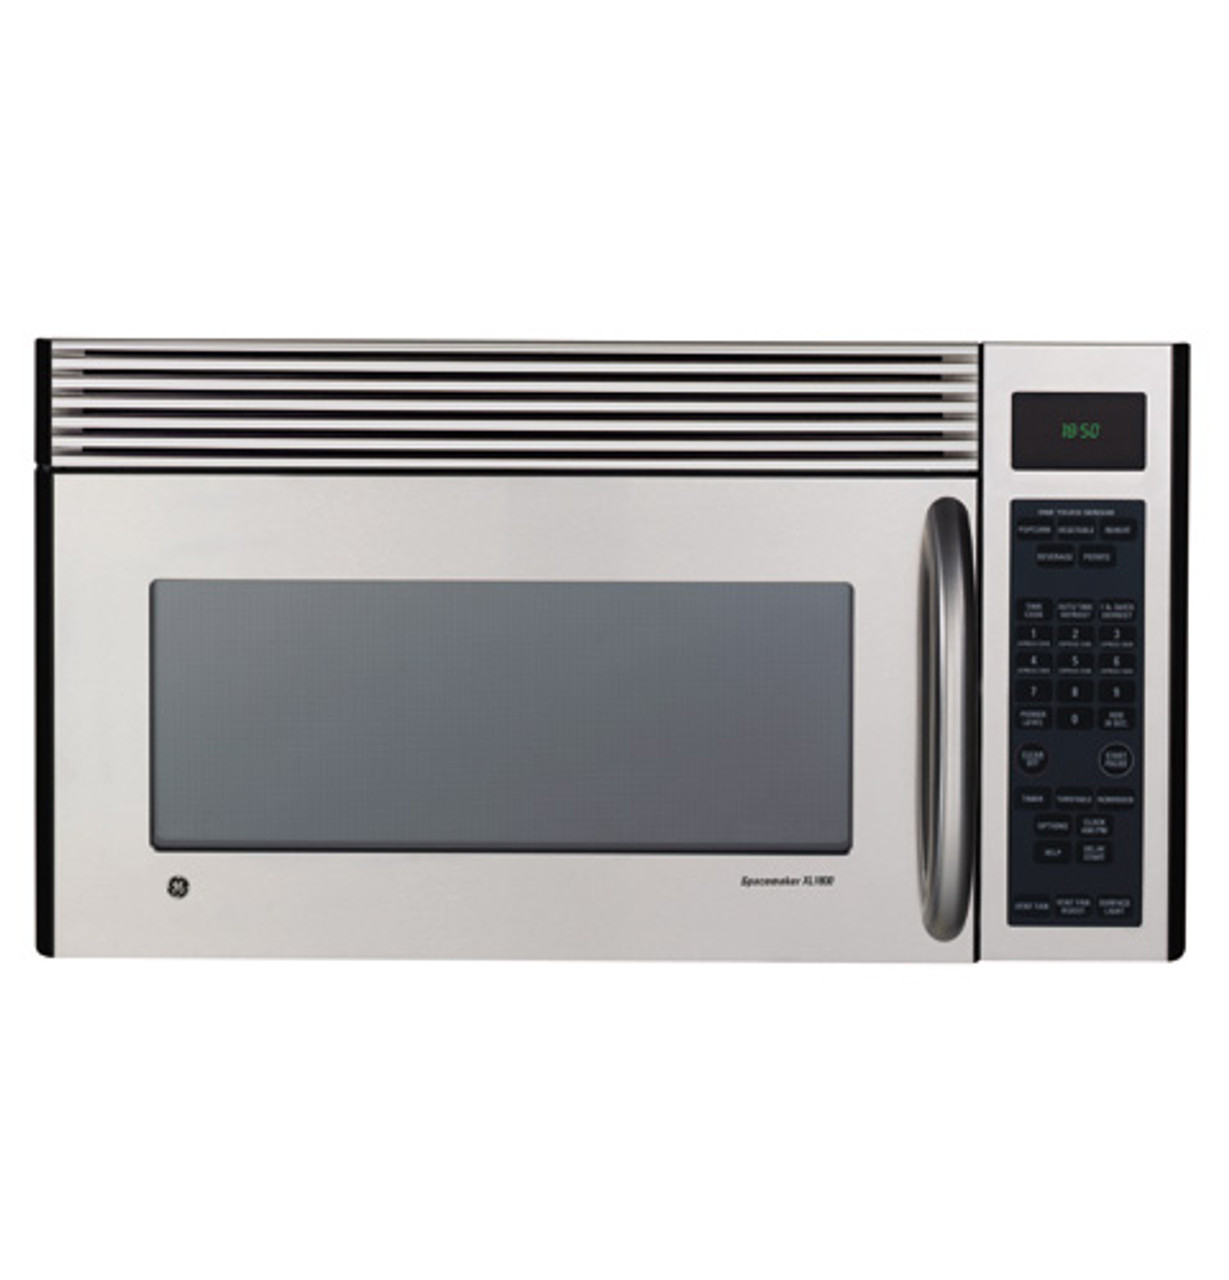 ge spacemaker xl1800 microwave oven jvm1850sh